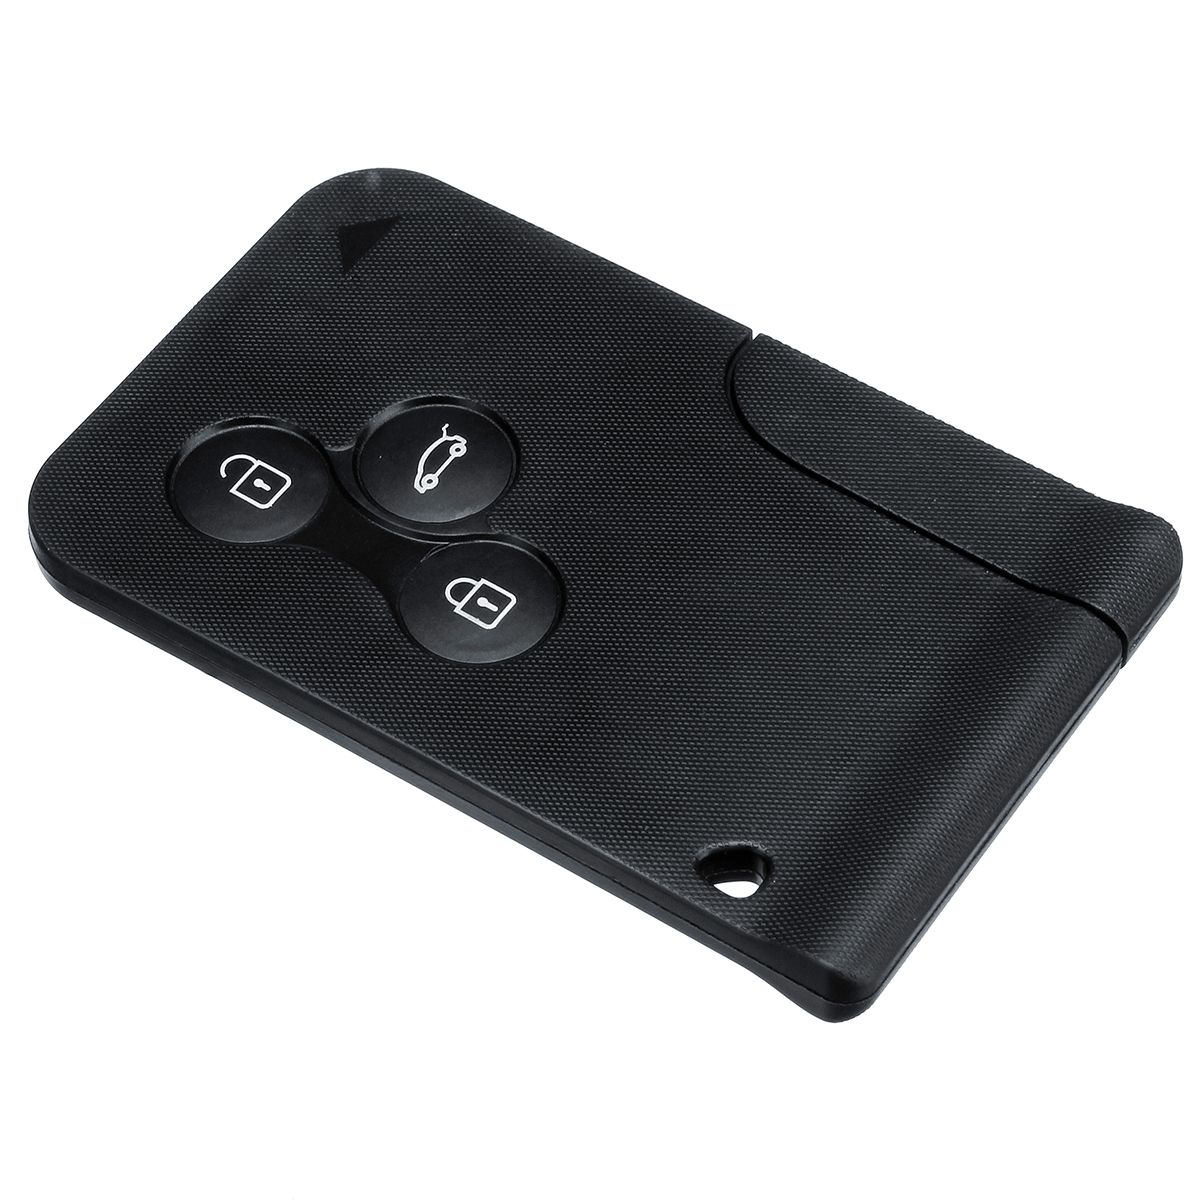 renault megane key card instructions